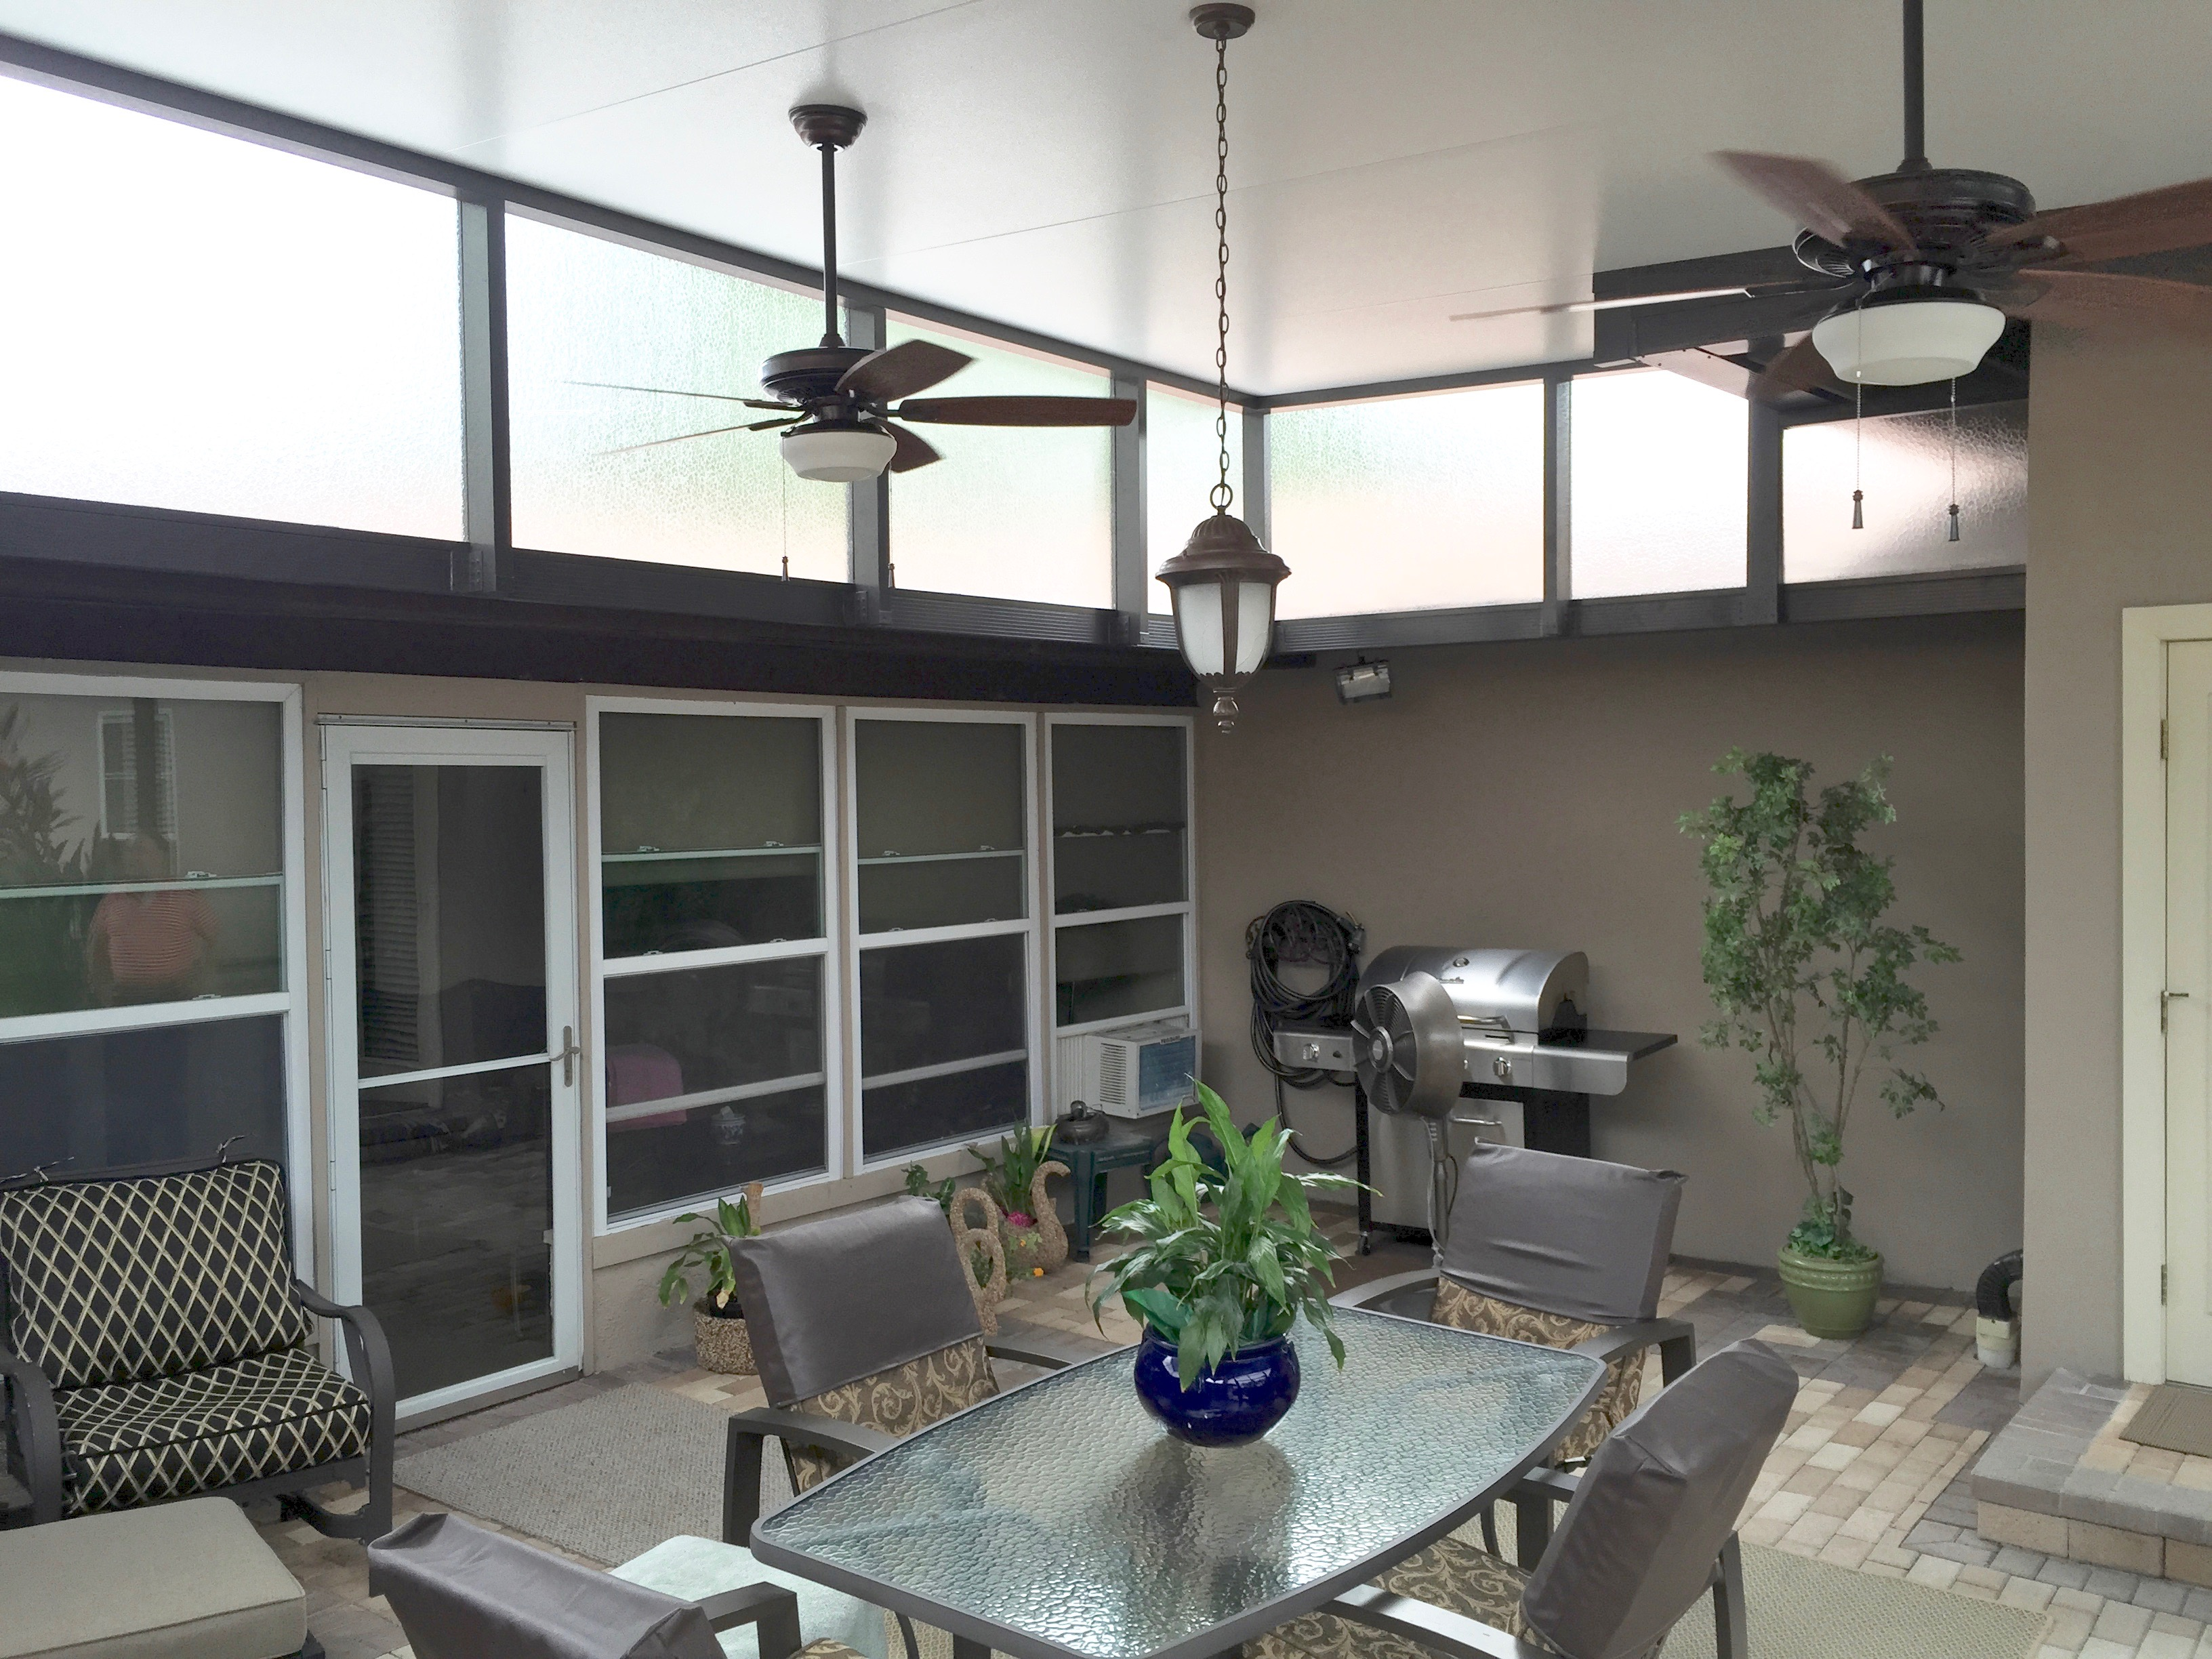 Renaissance Patio Covers St. Petersburg FL